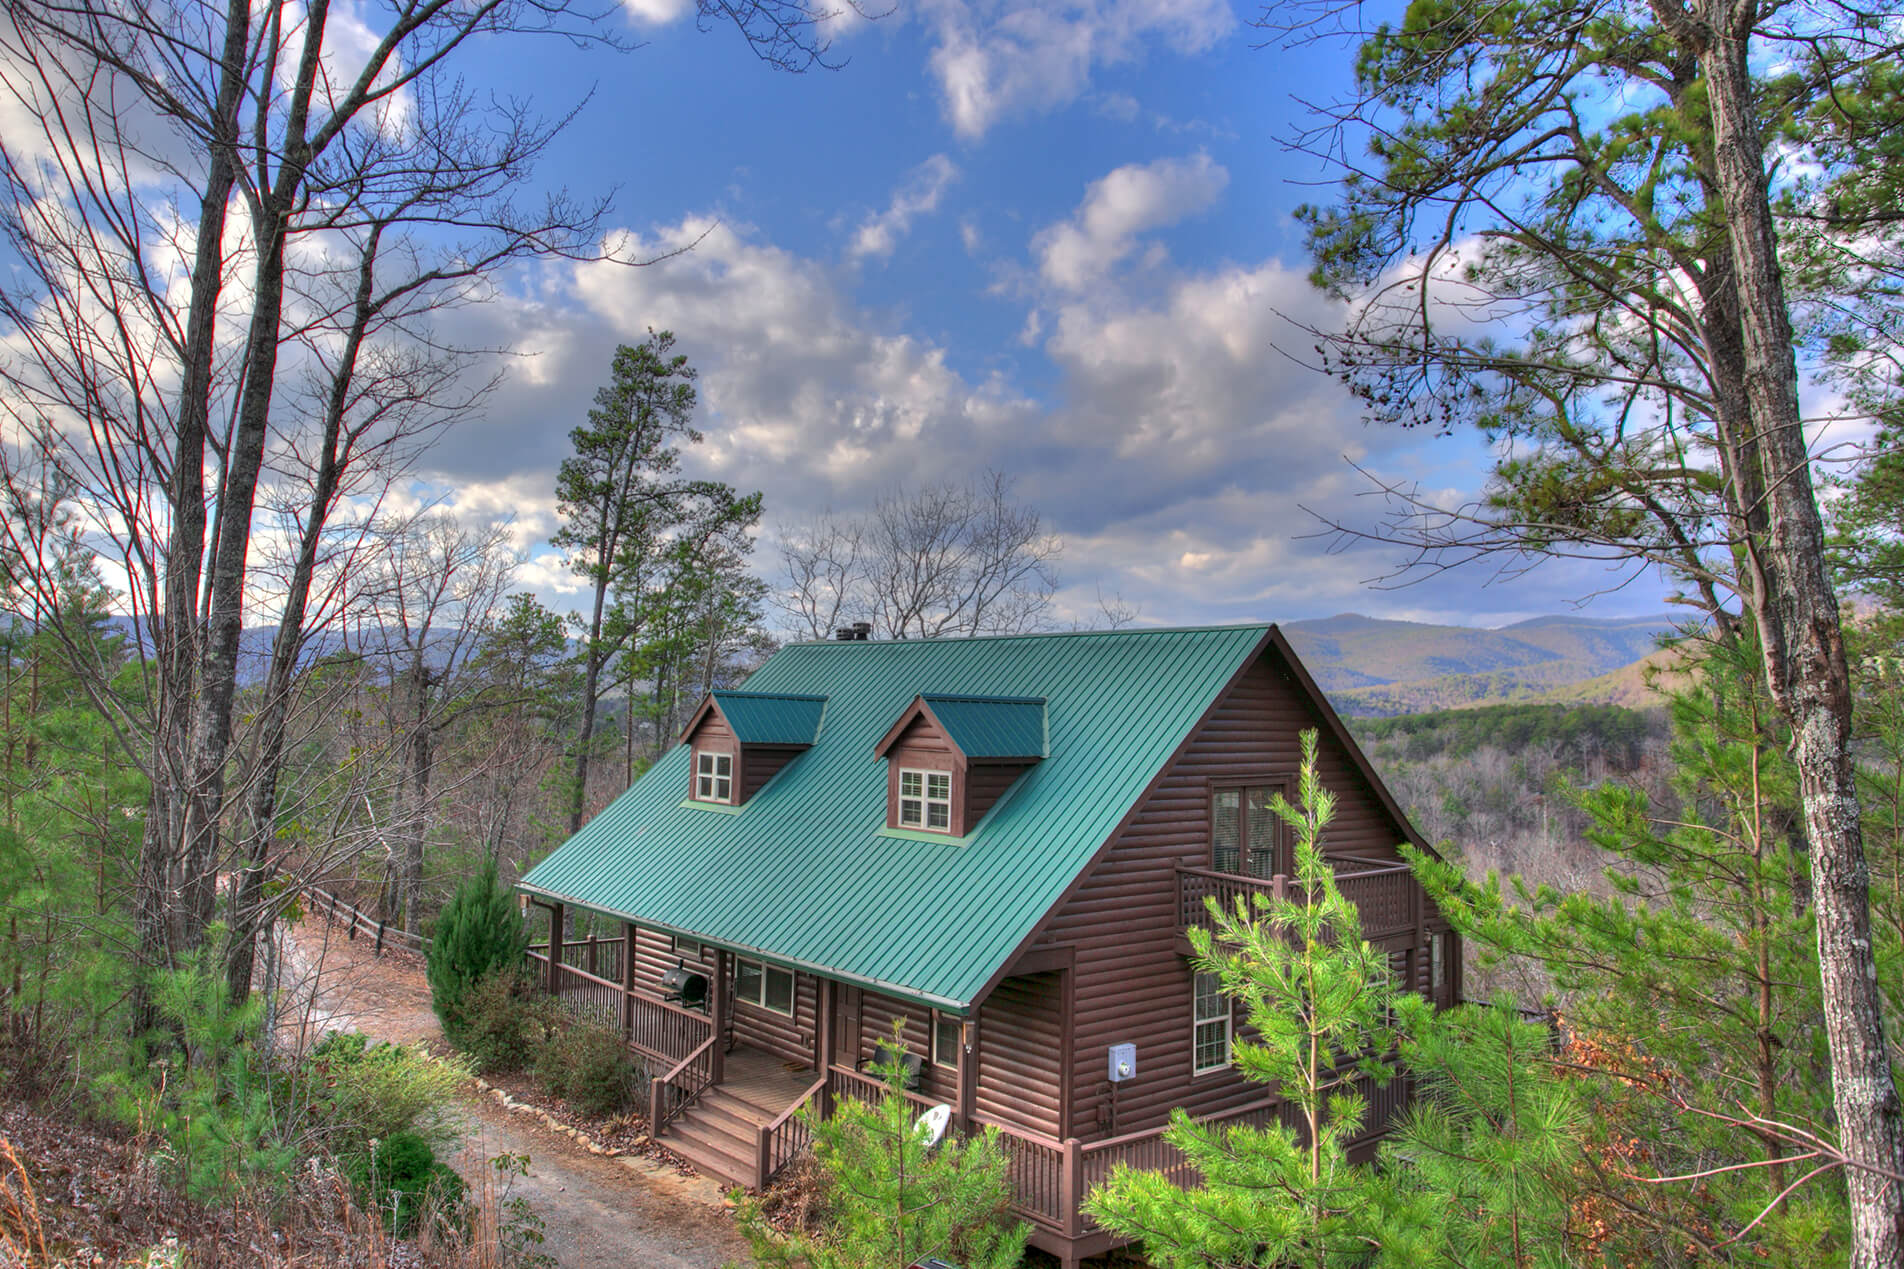 for open rentals two special enewmain also someone charming and in rustic helen delivers a cabins with romantic enchantment your plan so floor cabin luxurious experience ga